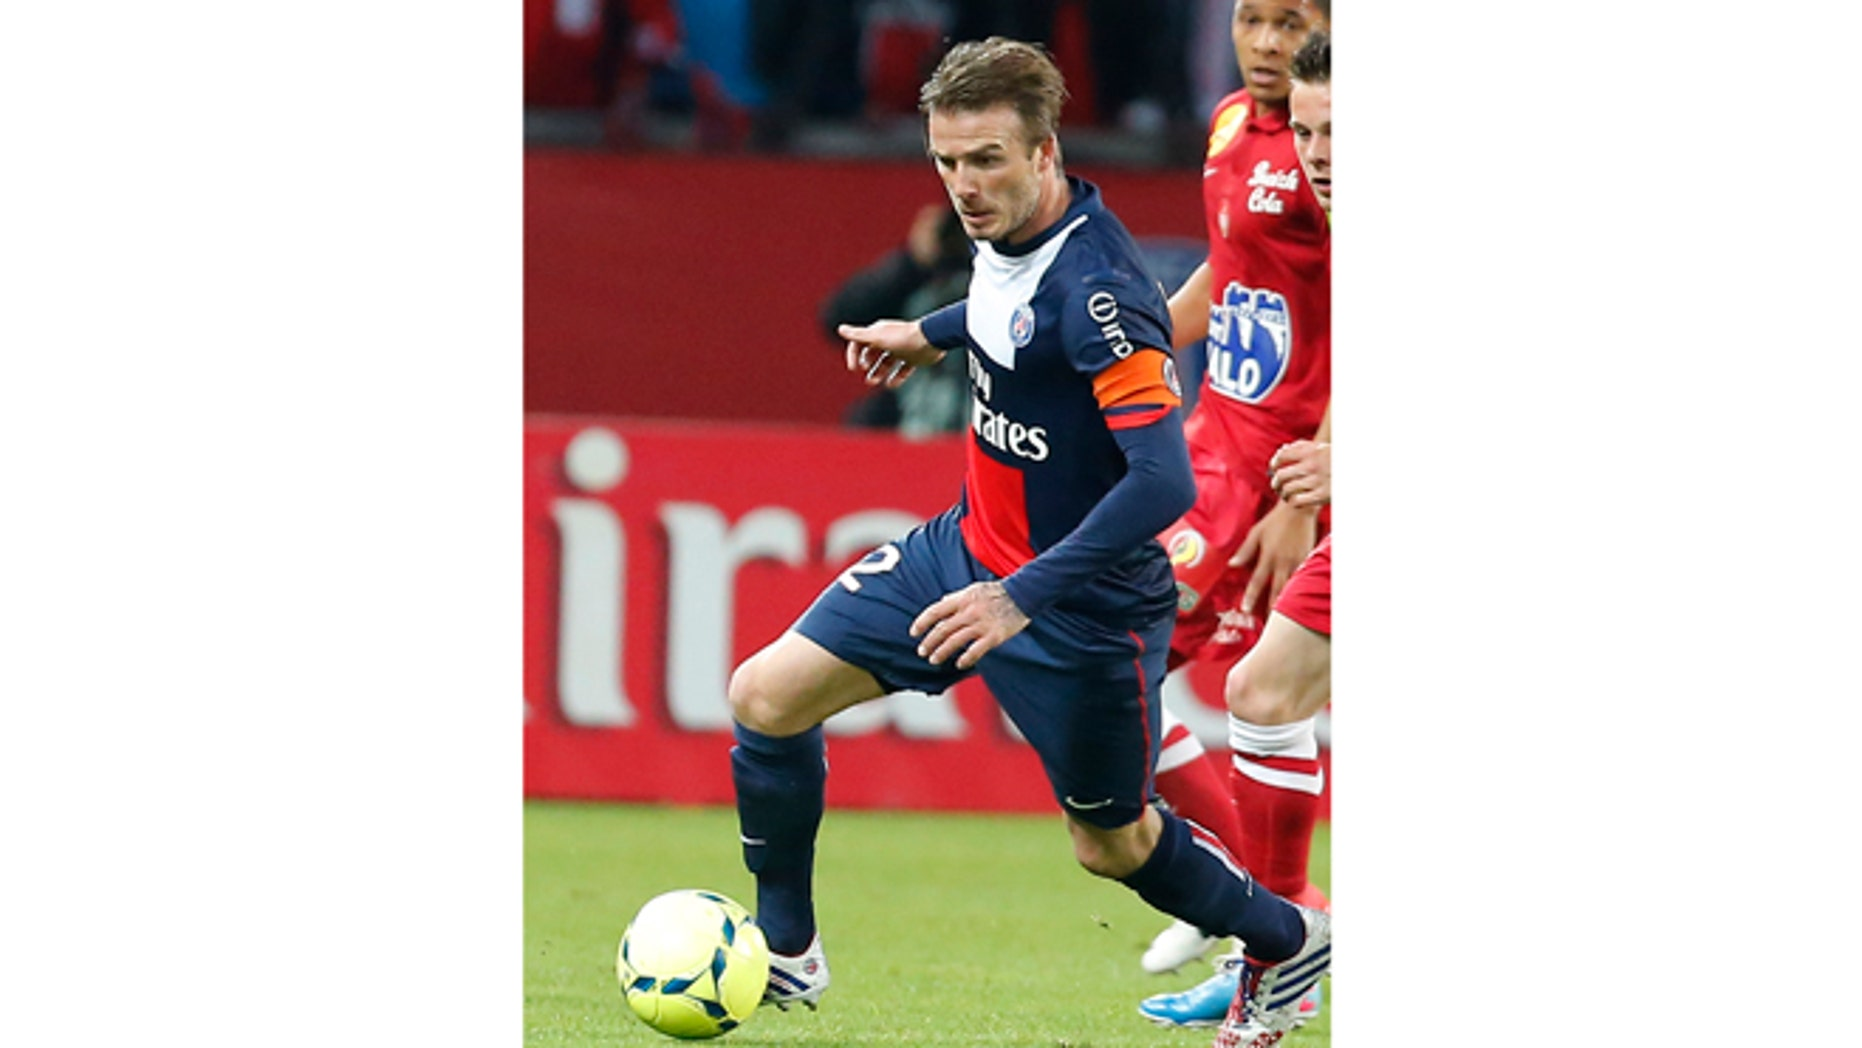 May 18, 2013: In this photo, Paris Saint Germain's David Beckham dribbles the ball during a French League One soccer match against Brest at Parc des Princes Stadium in Paris.